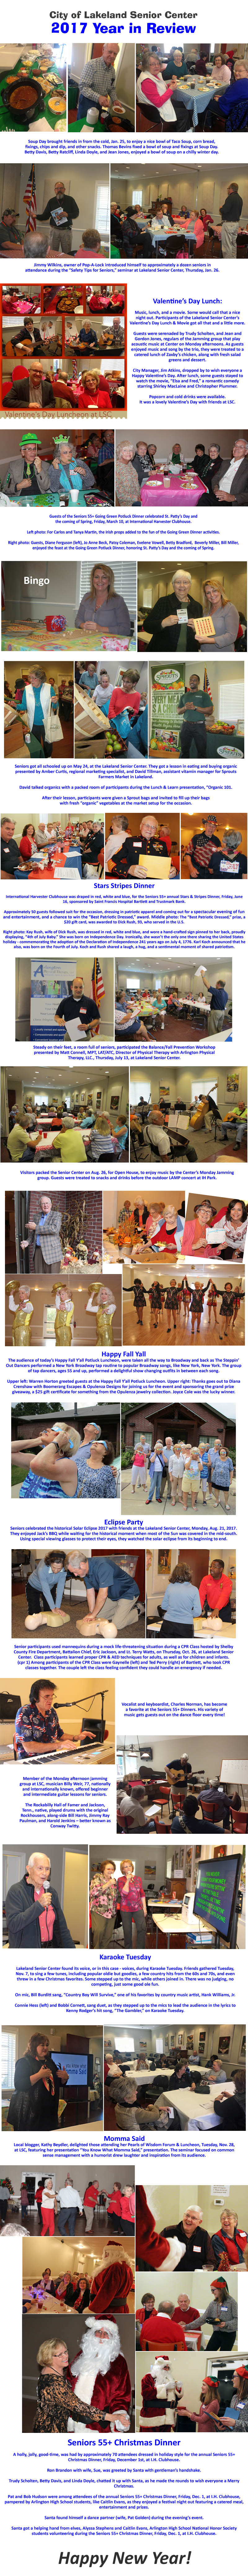 Lakeland_Seniors55_memories_2017_collage copy.jpg